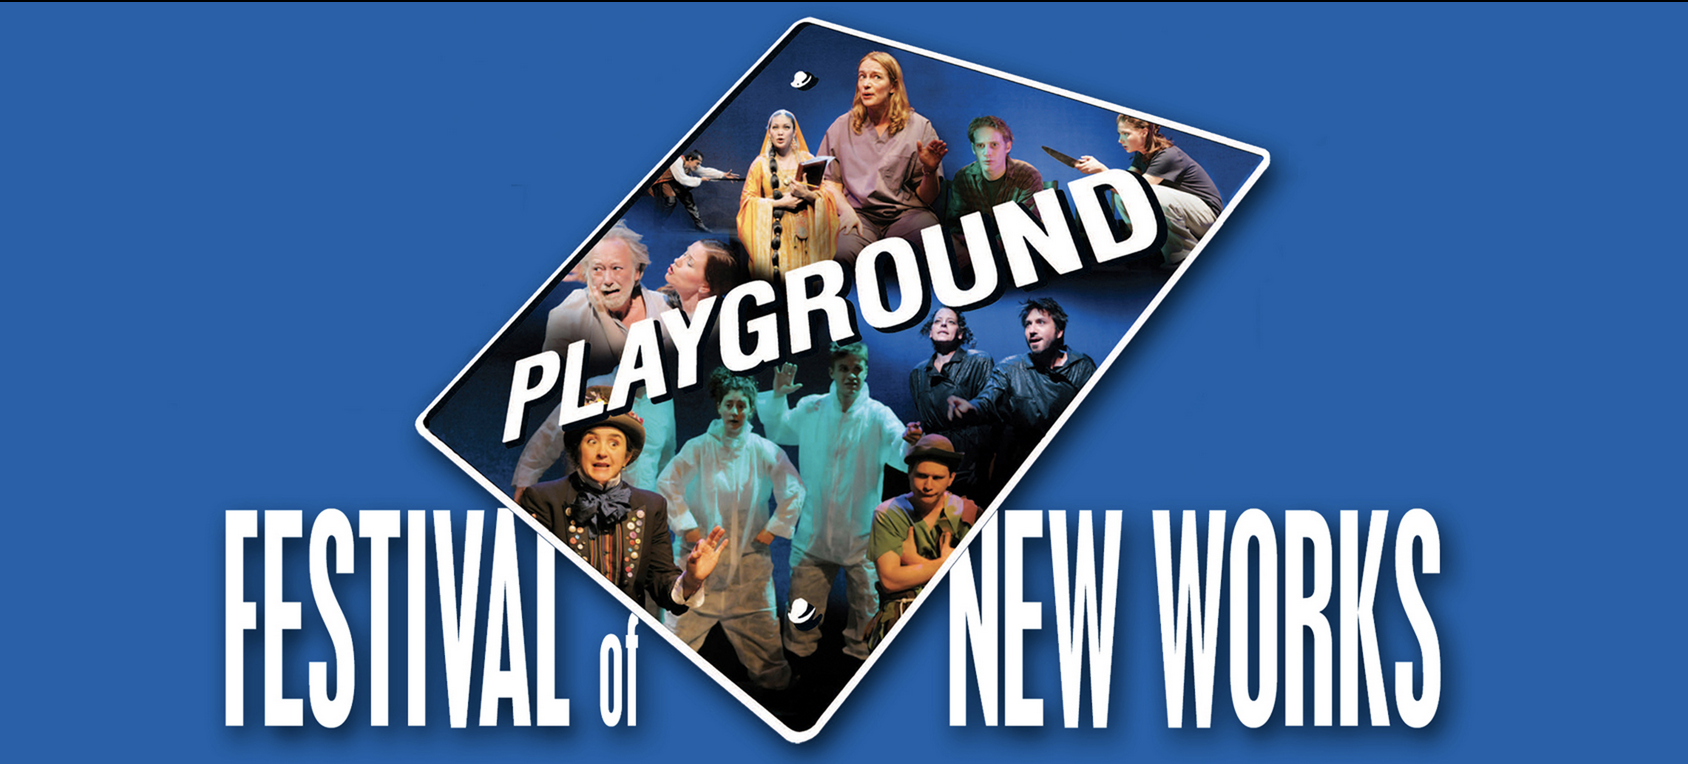 Another Staged Reading - Patrick will be appearing in a staged reading of Jonathan Luskin's PERFECT in Playground's Festival of New Works on Saturday, May 25th at 1:30pm in San Francisco. Details HERE.